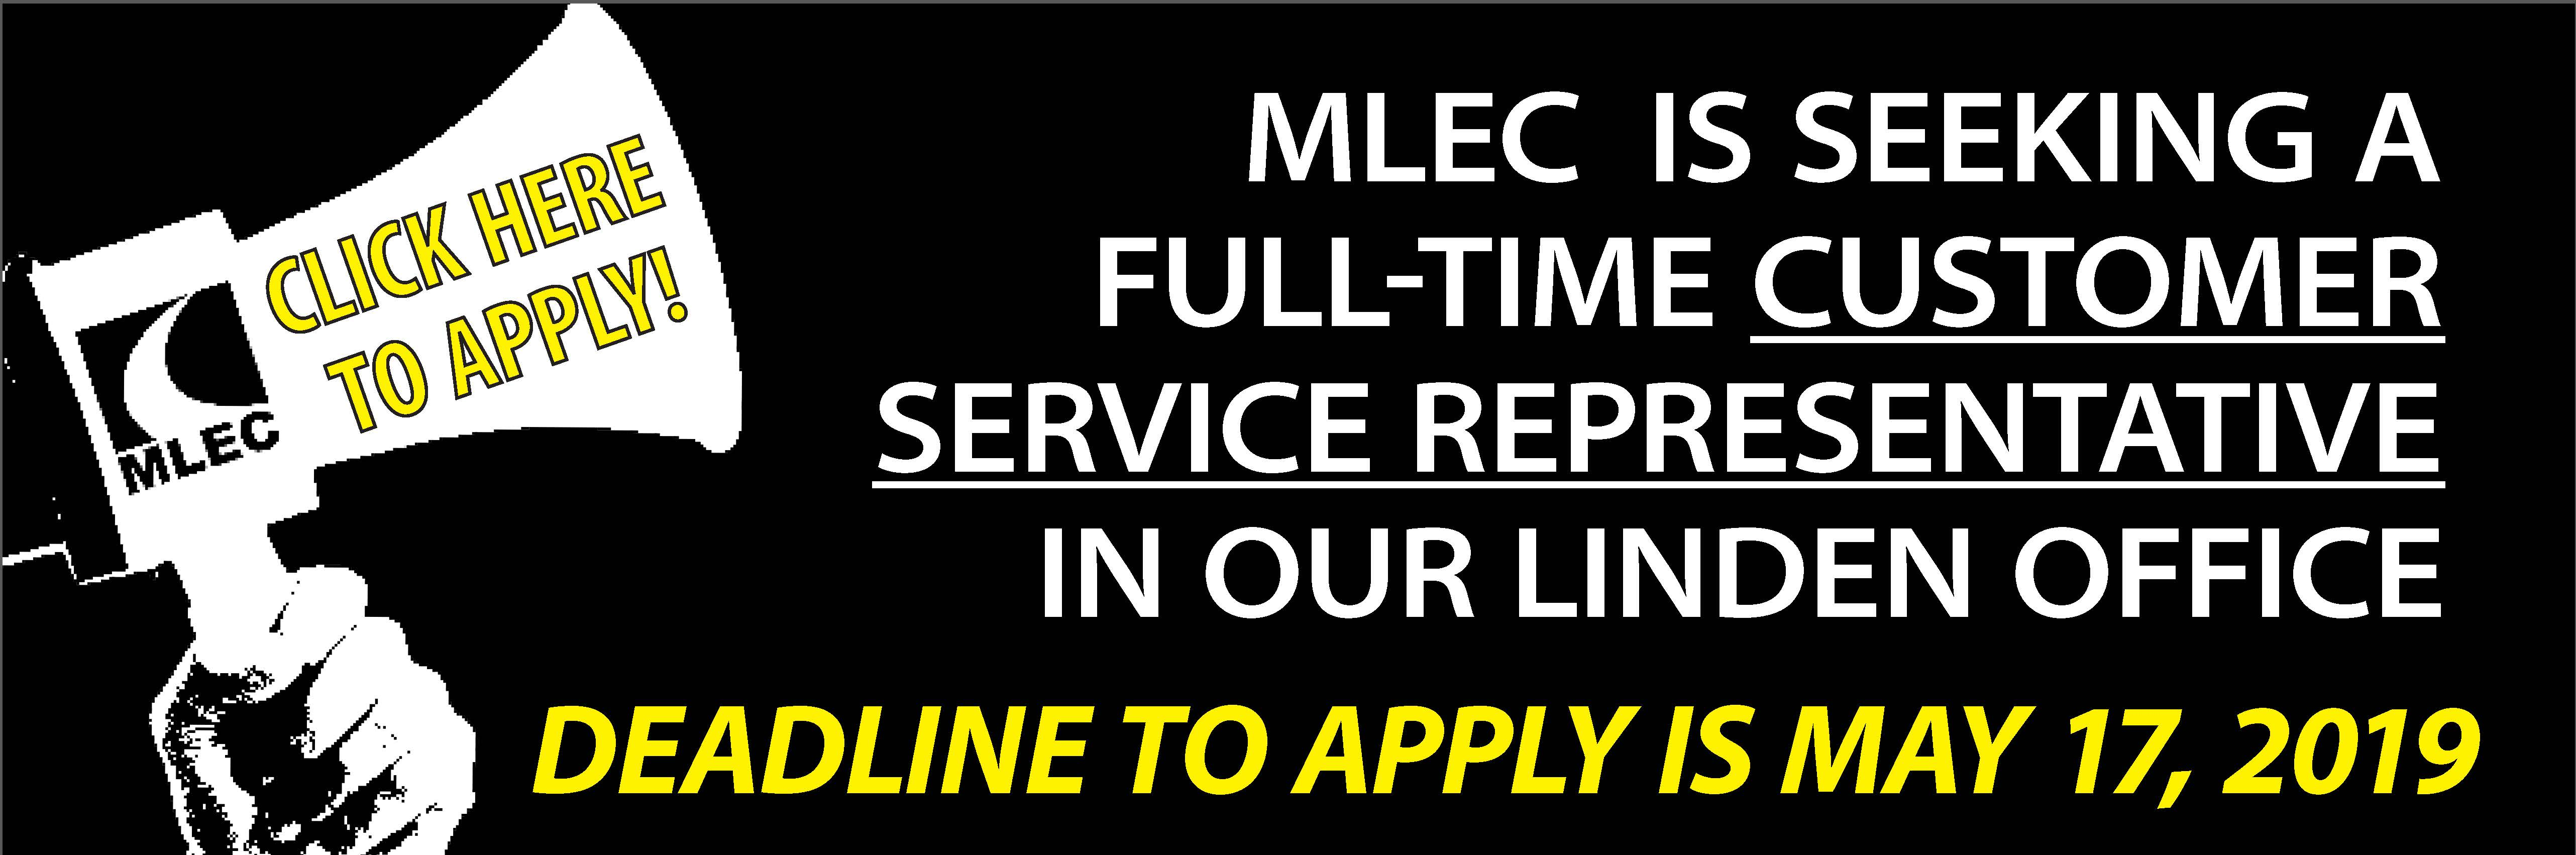 MLEC is seeking a full-time customer service representative for our Linden office. Deadline to apply is Friday, May 17, 2019. Click here to apply.